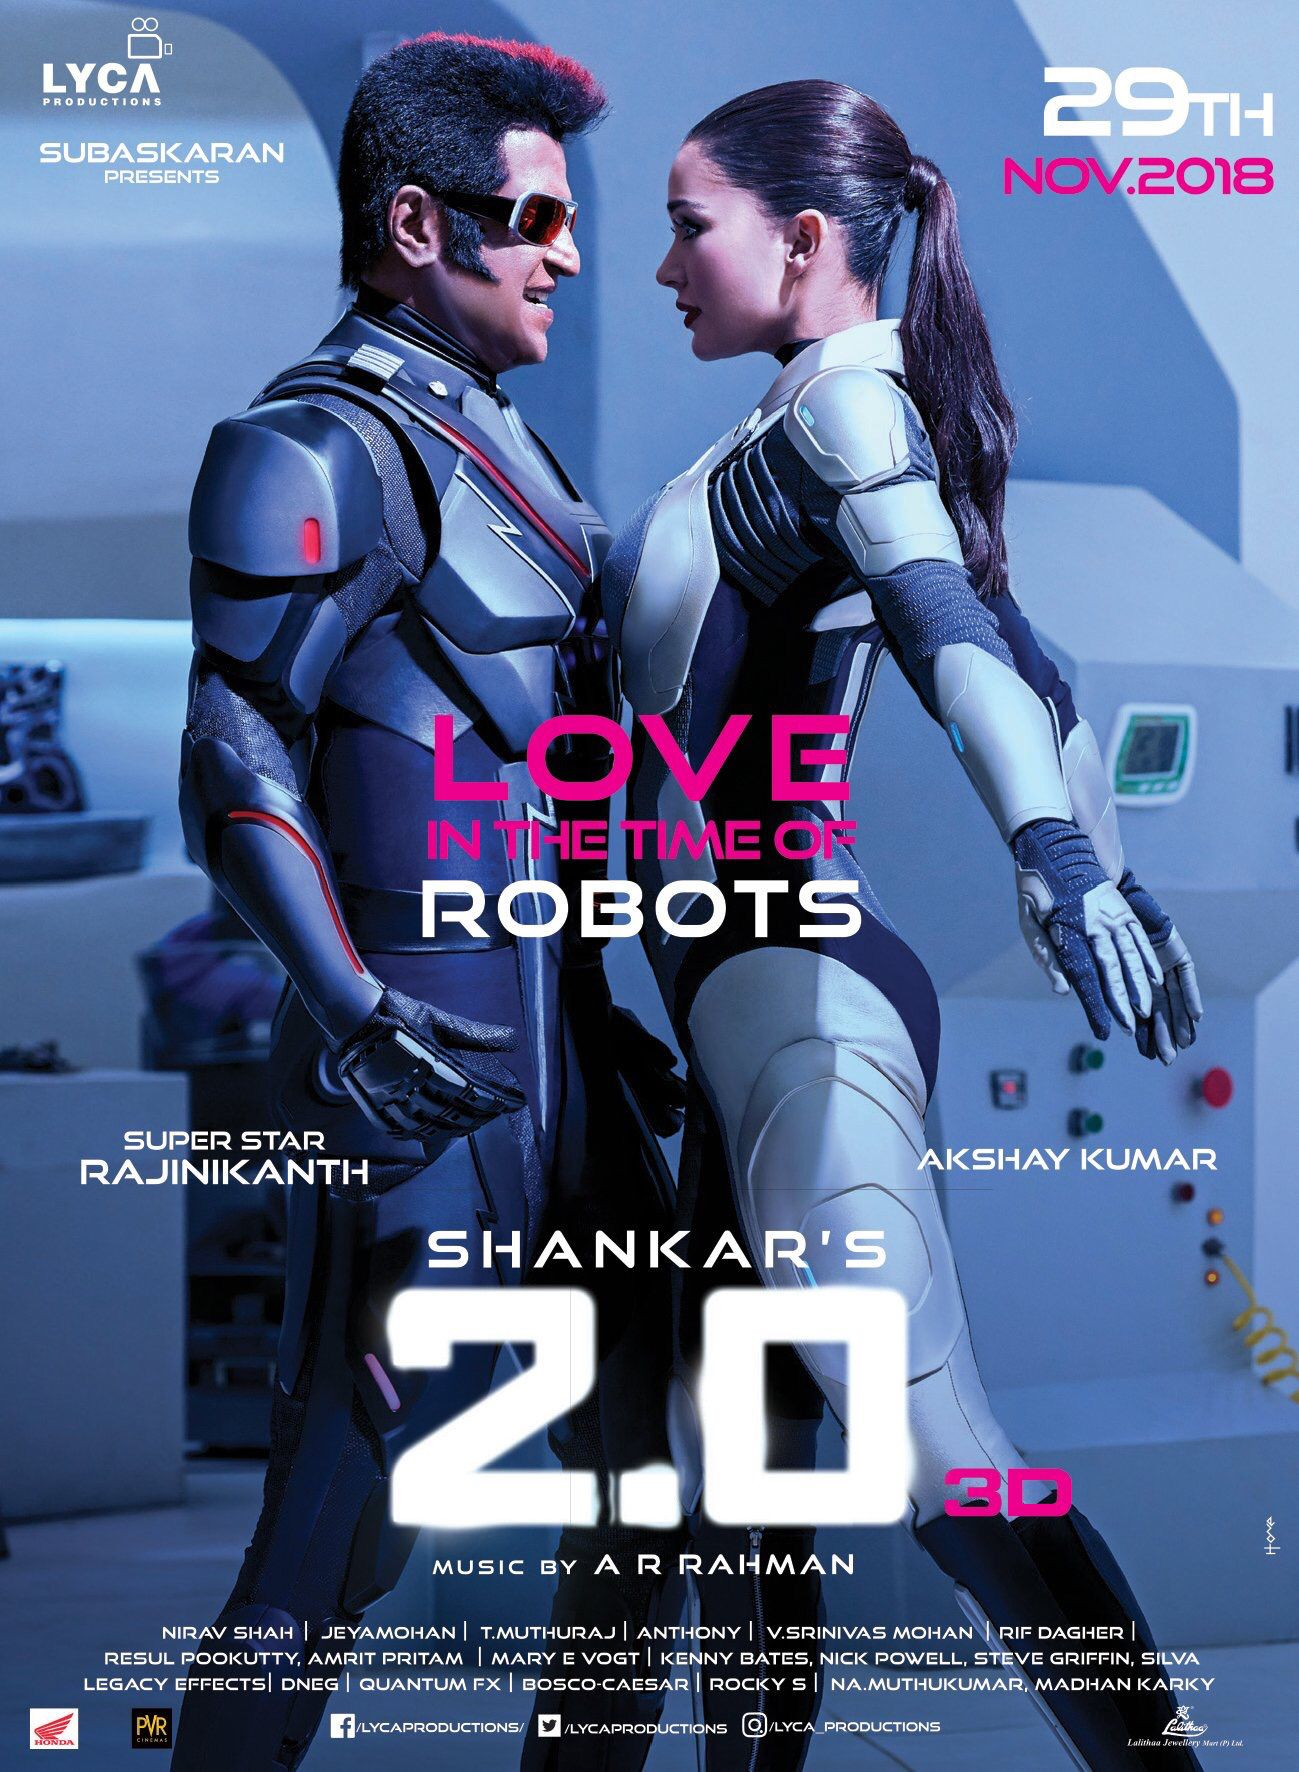 Pin By Nawal Parmar On New Bollywood Movie Posters Full Movies Download Movies Online Free Film Telugu Movies Download